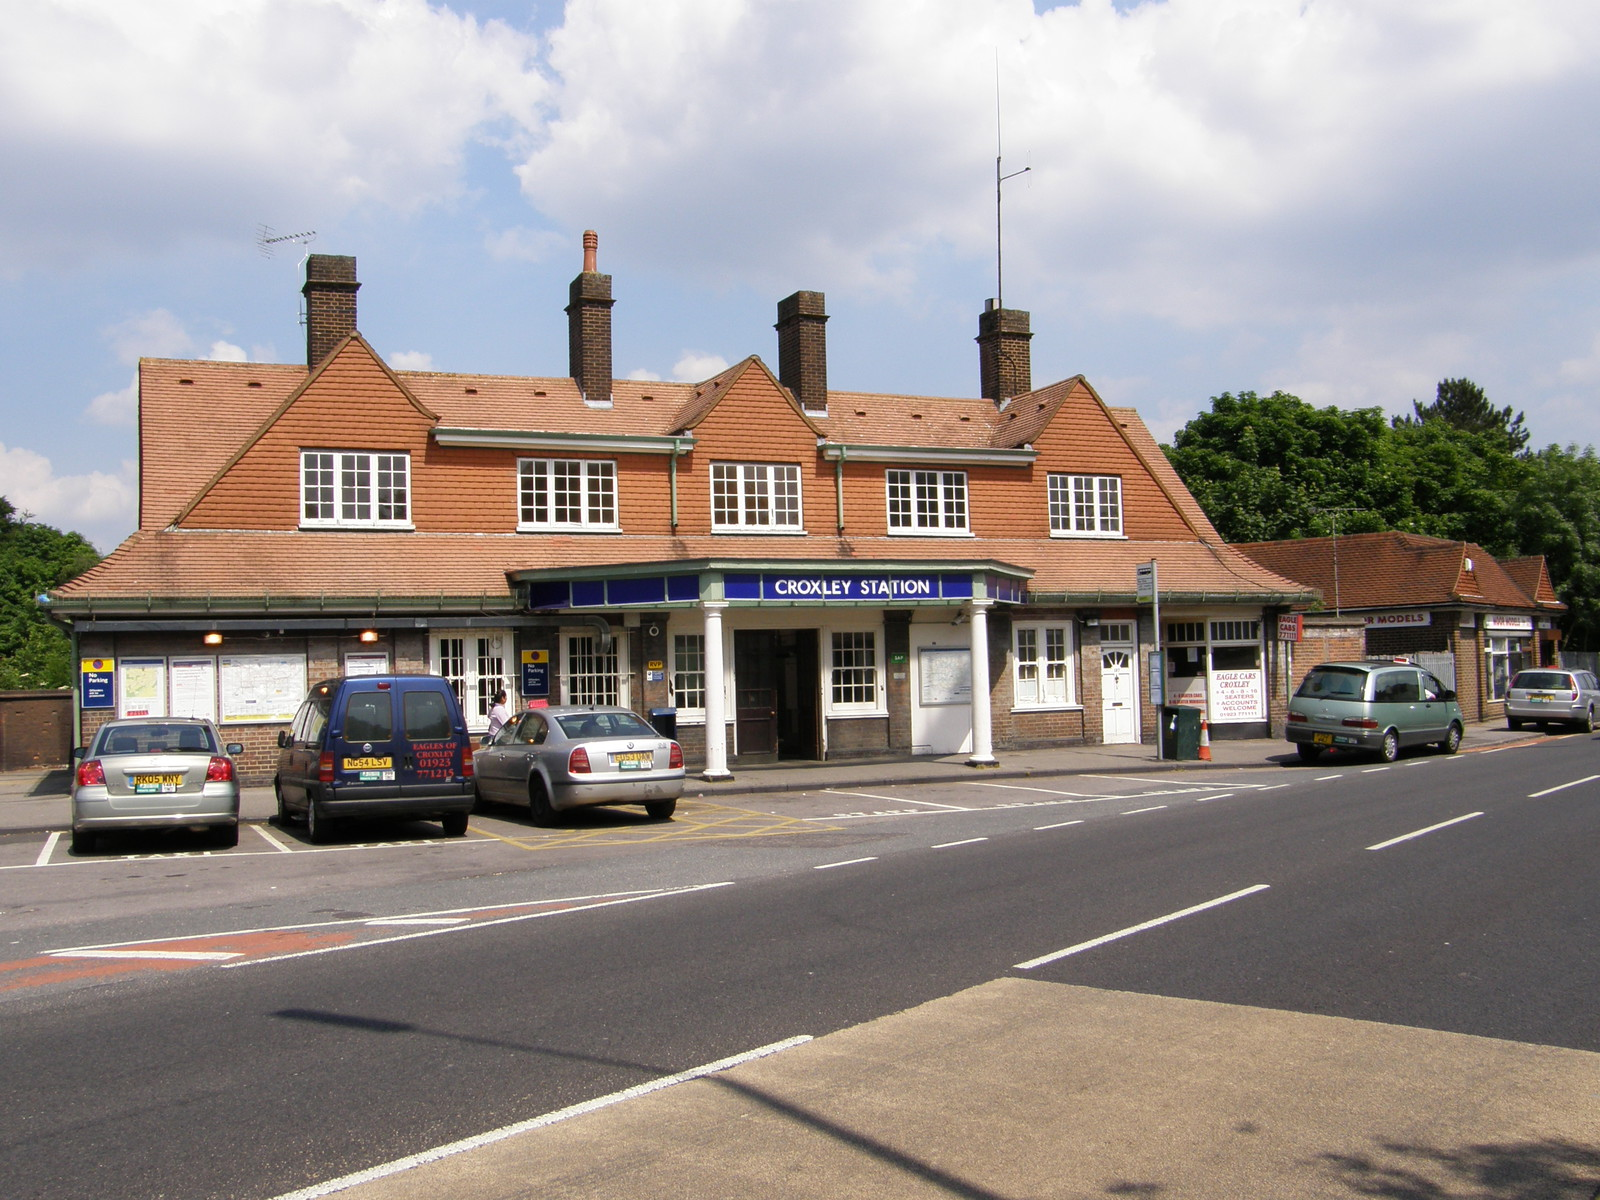 Croxley station